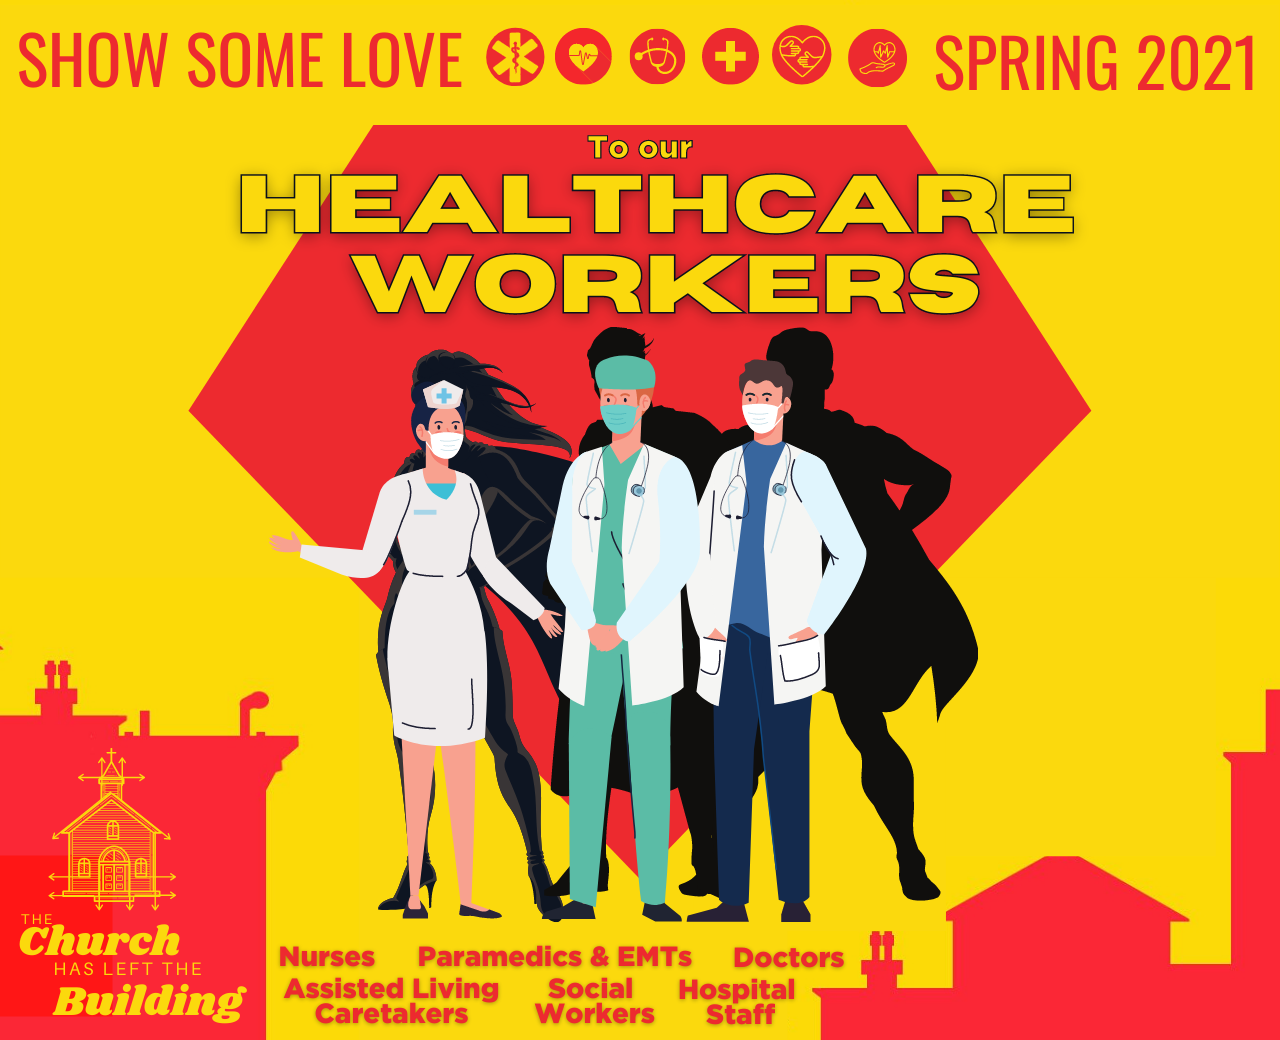 Show some love to our healthcare workers